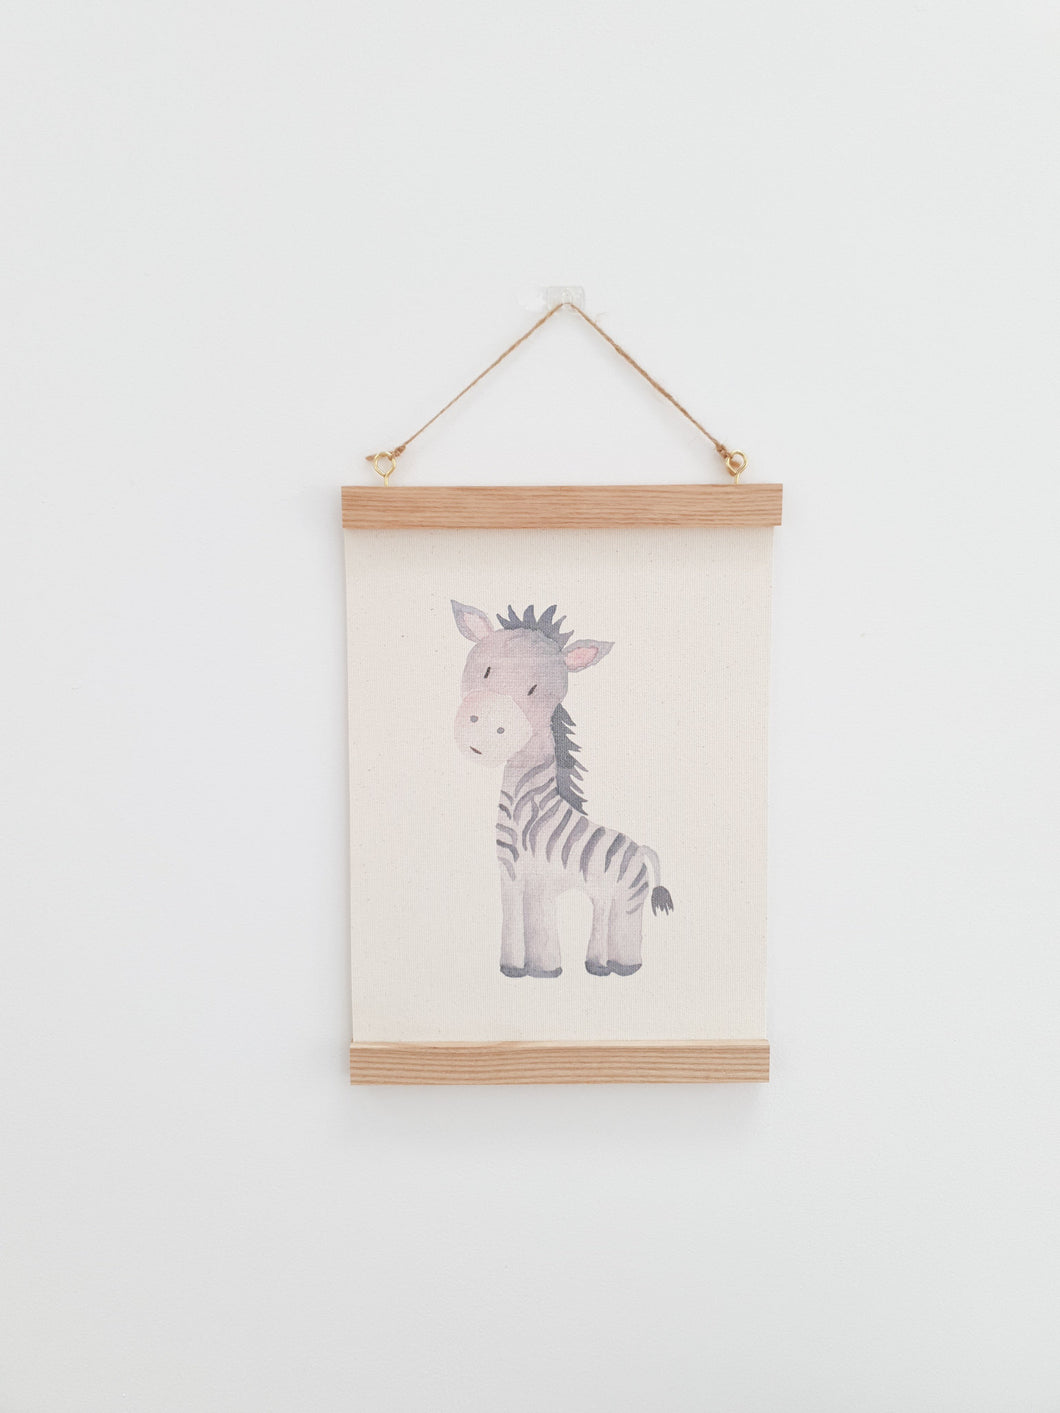 Zebra canvas print with wooden wall hanger - Animal nursery accessory - Animal bedroom accessory - Watercolour Zebra Print